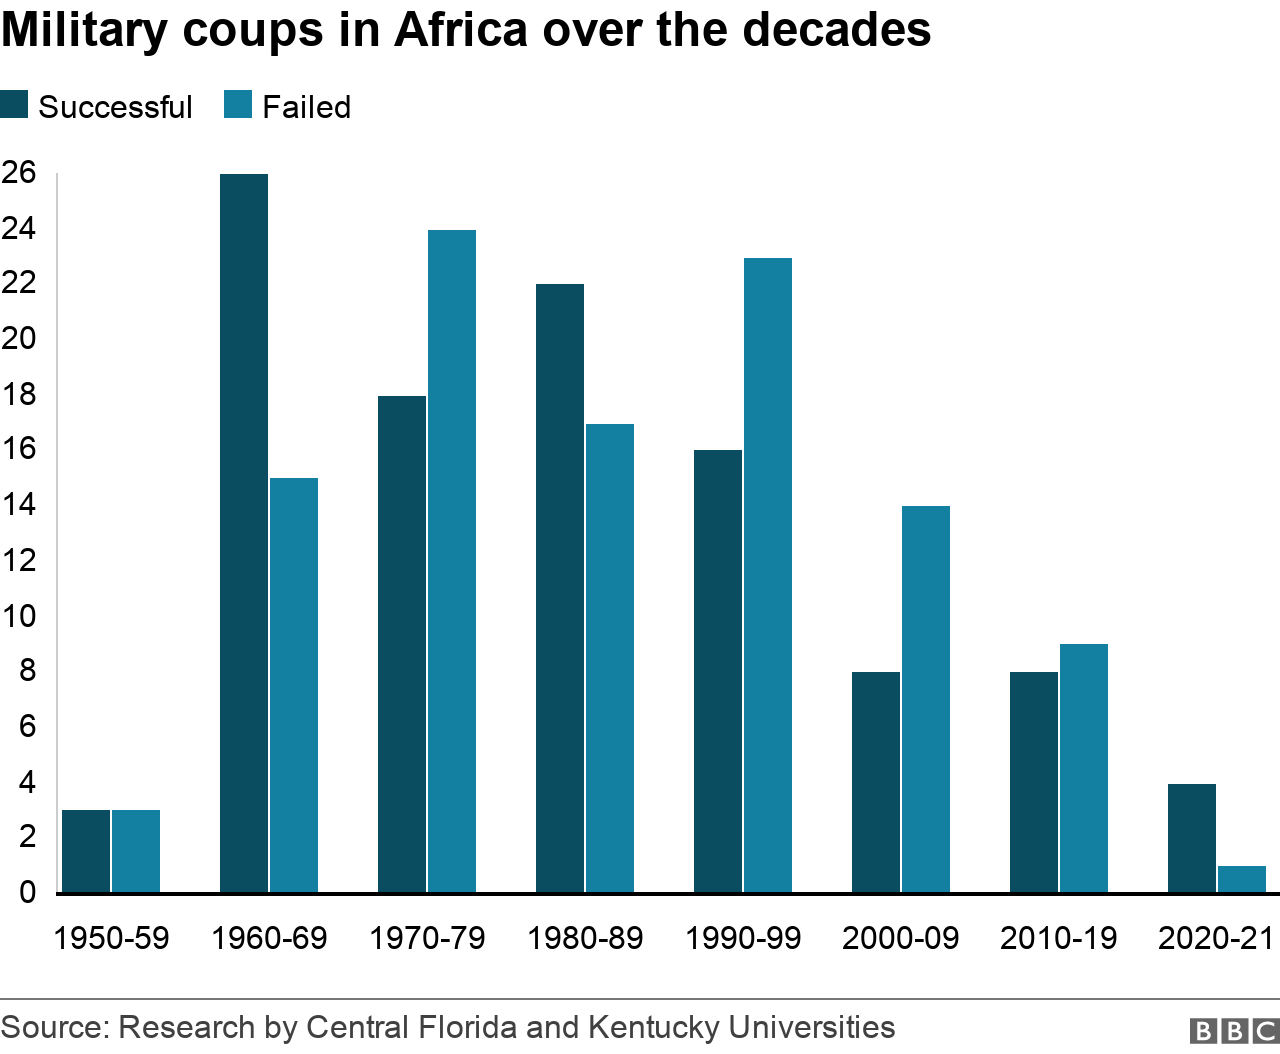 A chart showing successful and failed military coups in Africa